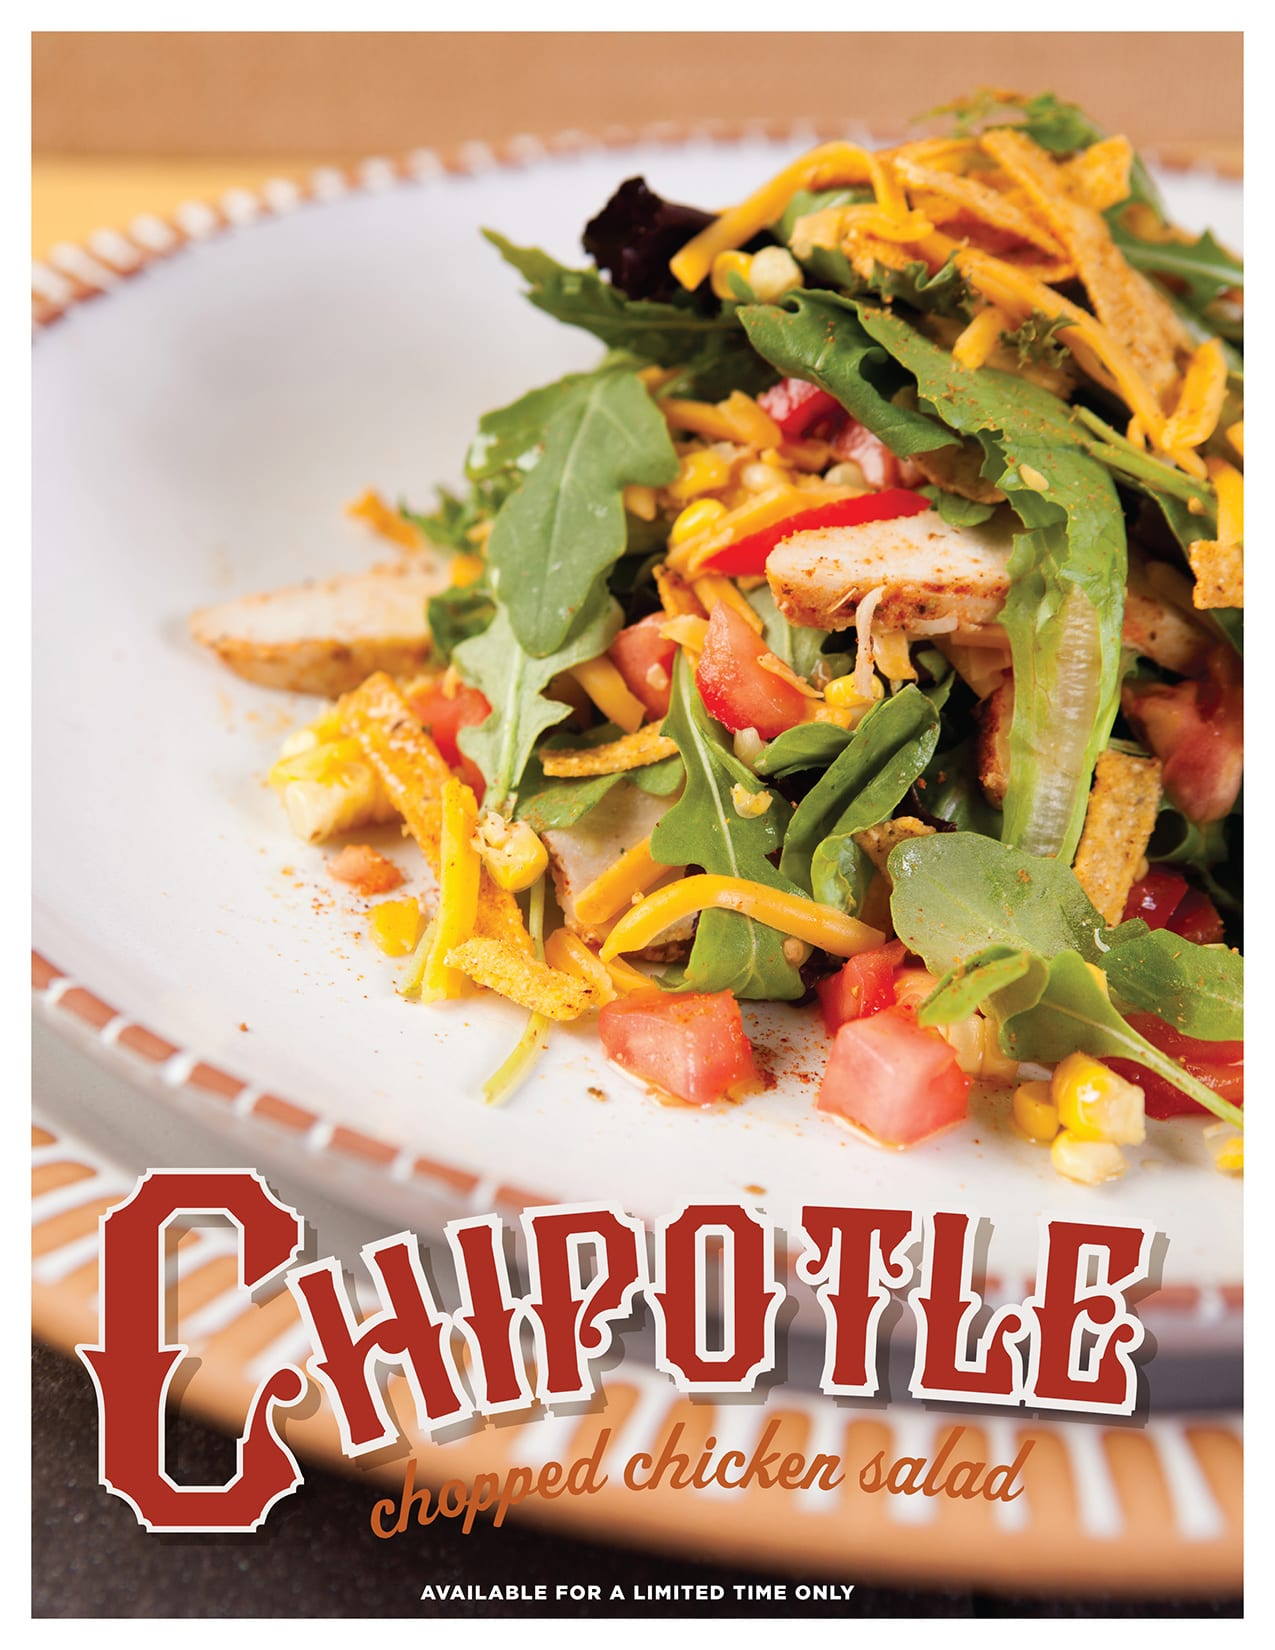 1603_march-LTOs_chipotle-chopped-chicken-salad_8.5x11_static